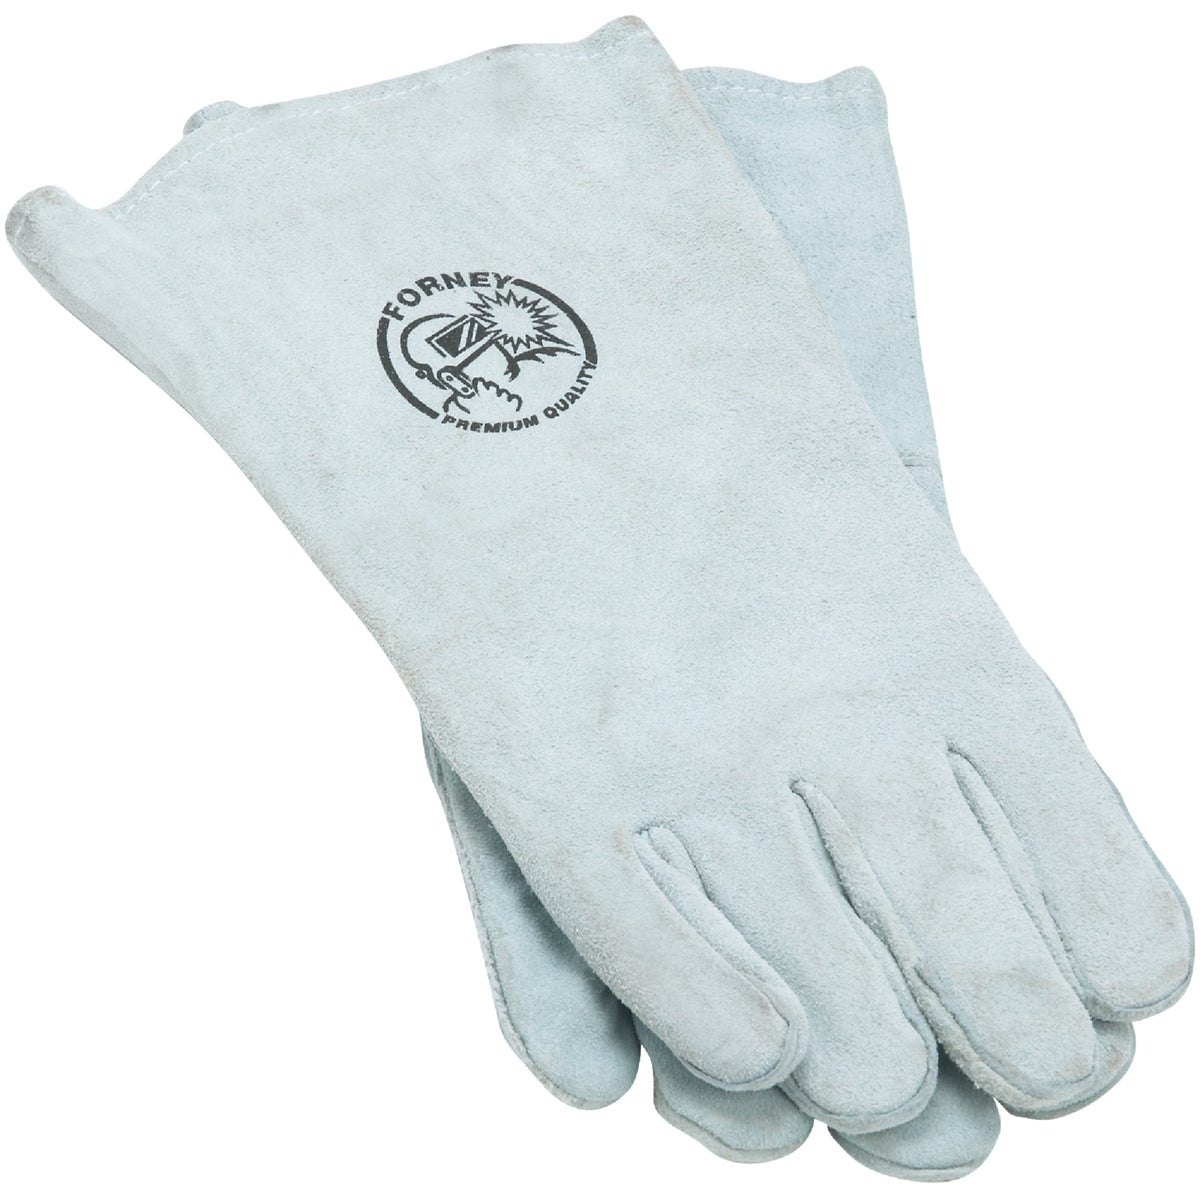 WELDING GLOVES - 55200 by Forney Industries